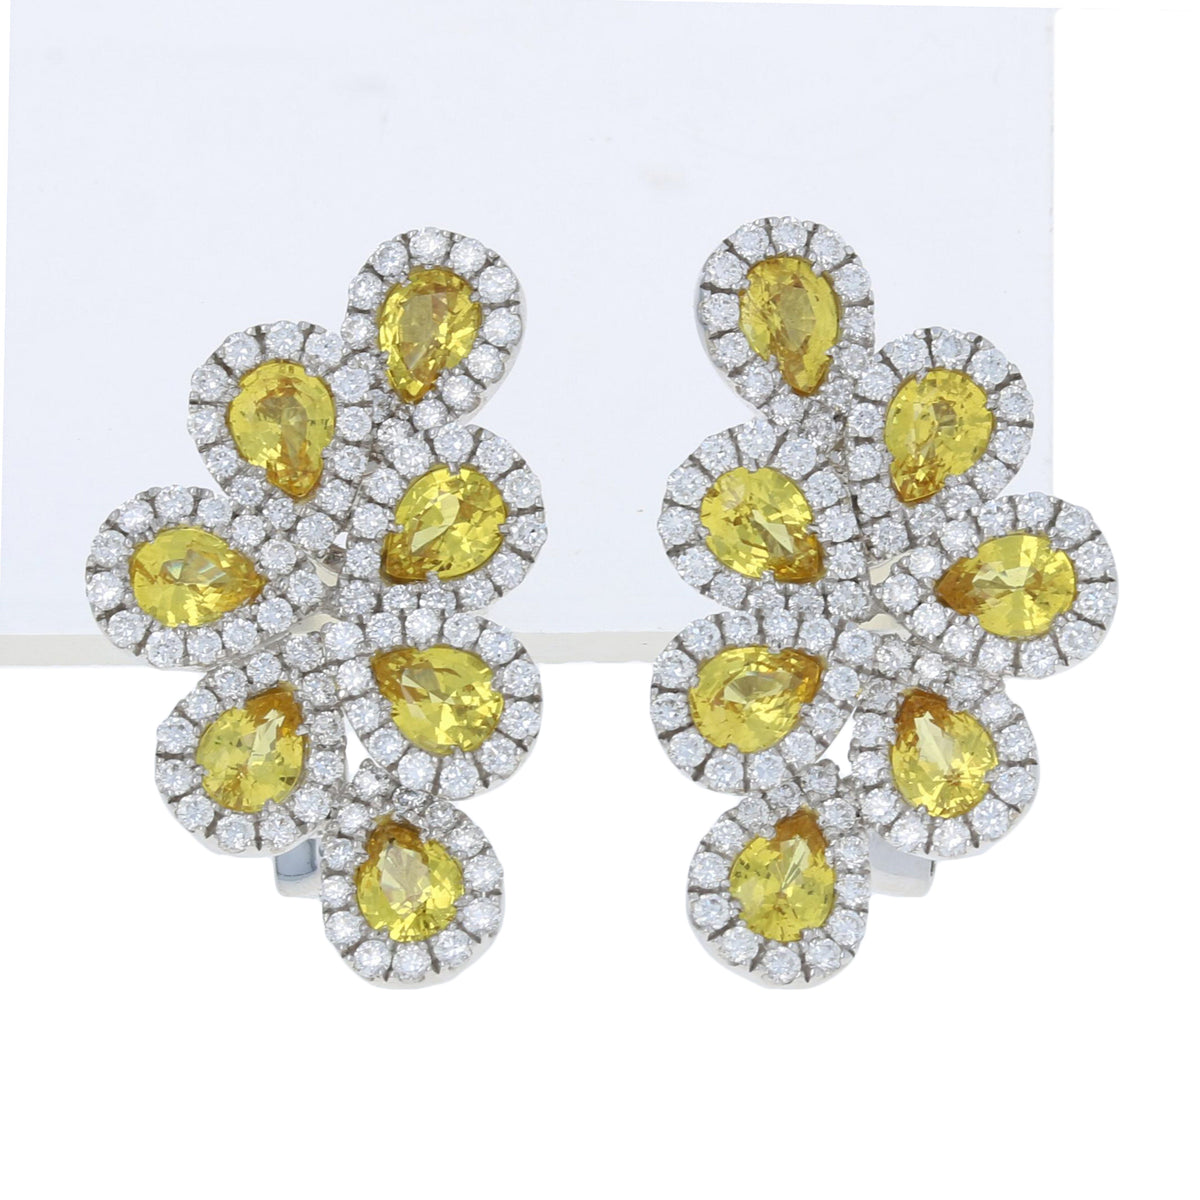 Pear Cut Yellow Sapphire & Diamond Earrings